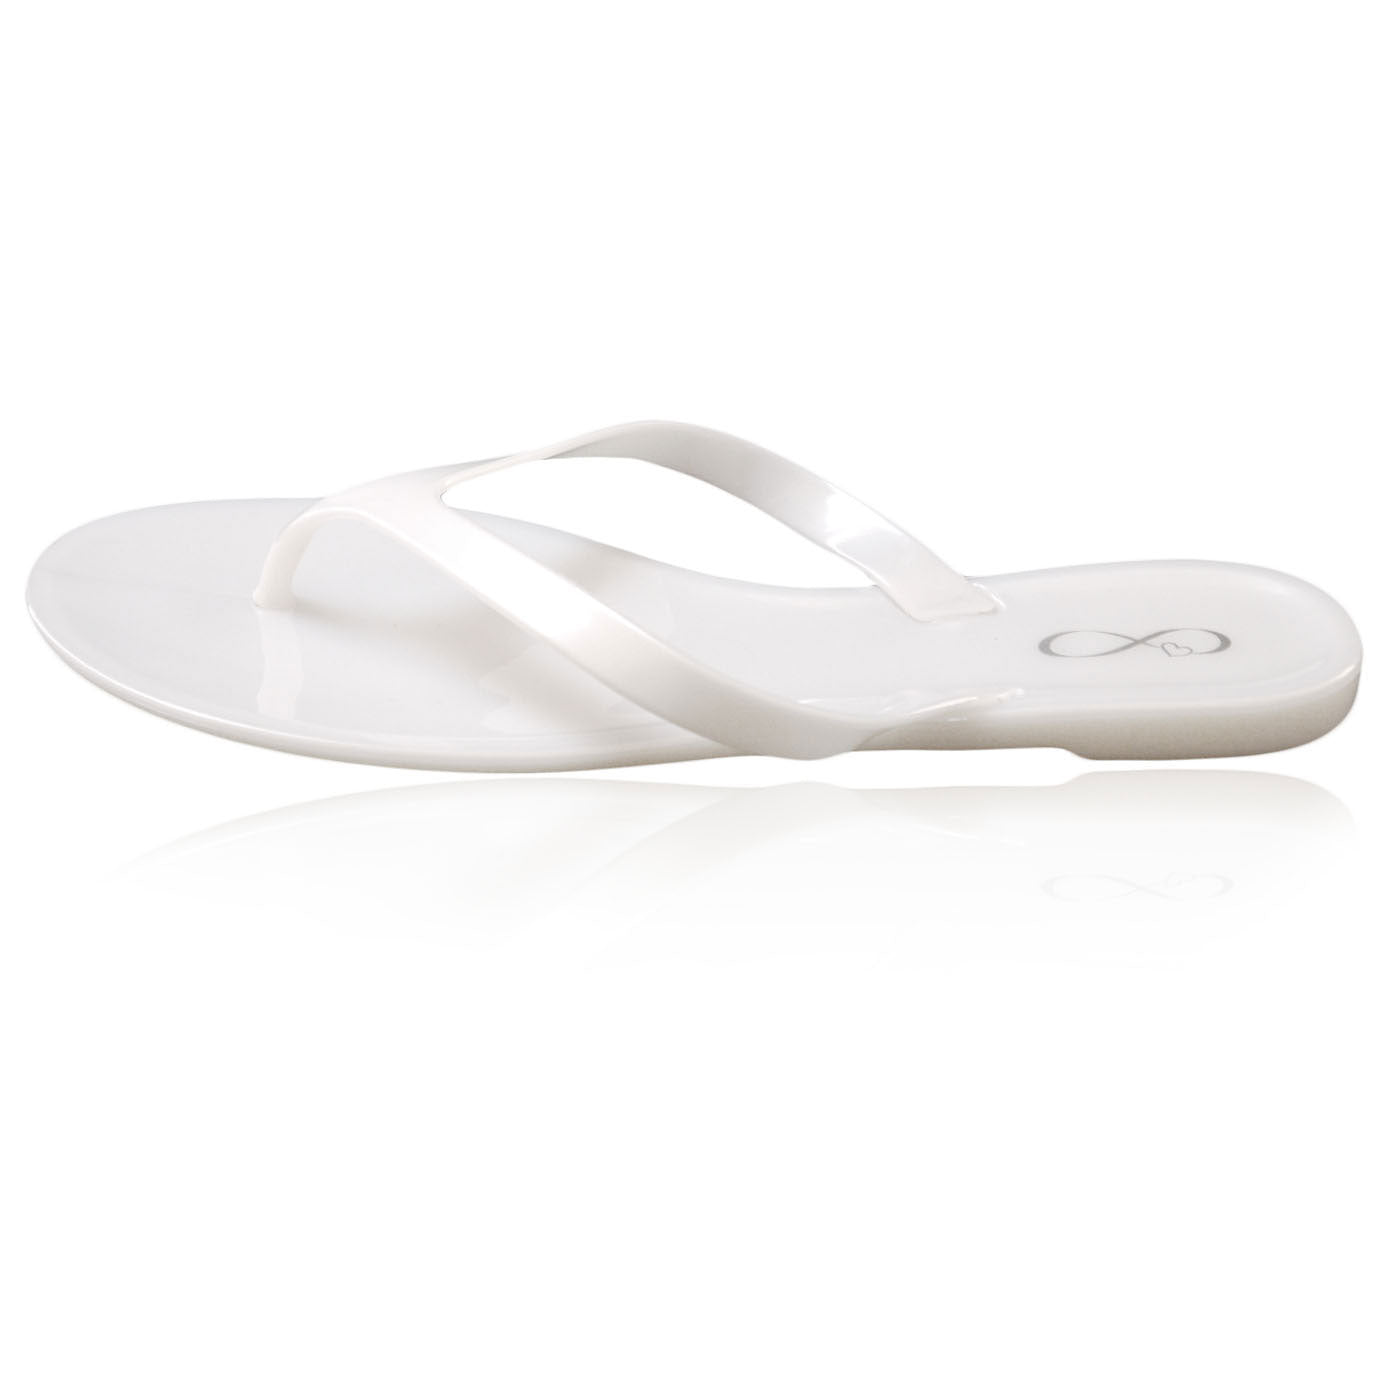 White pearl finish jelly flip flop